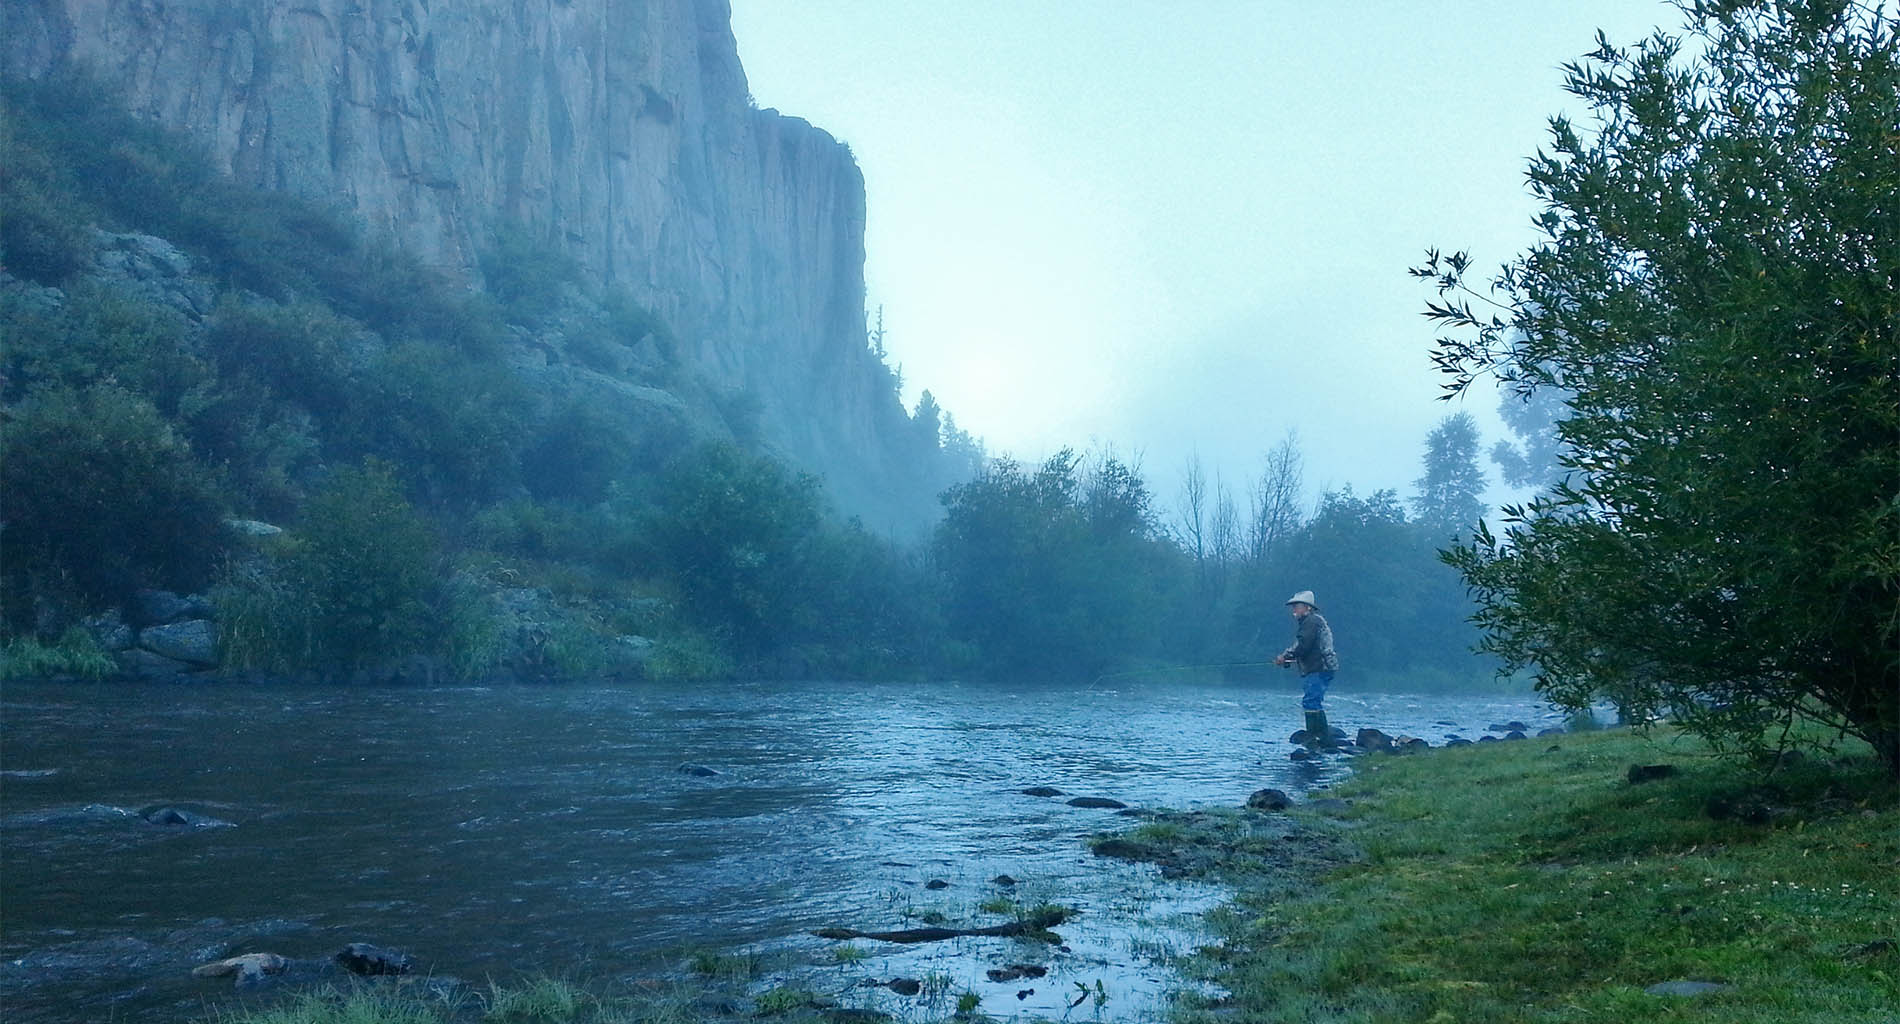 Man fishing in river with green trees and grass, tall cliffs, foggy atmosphere